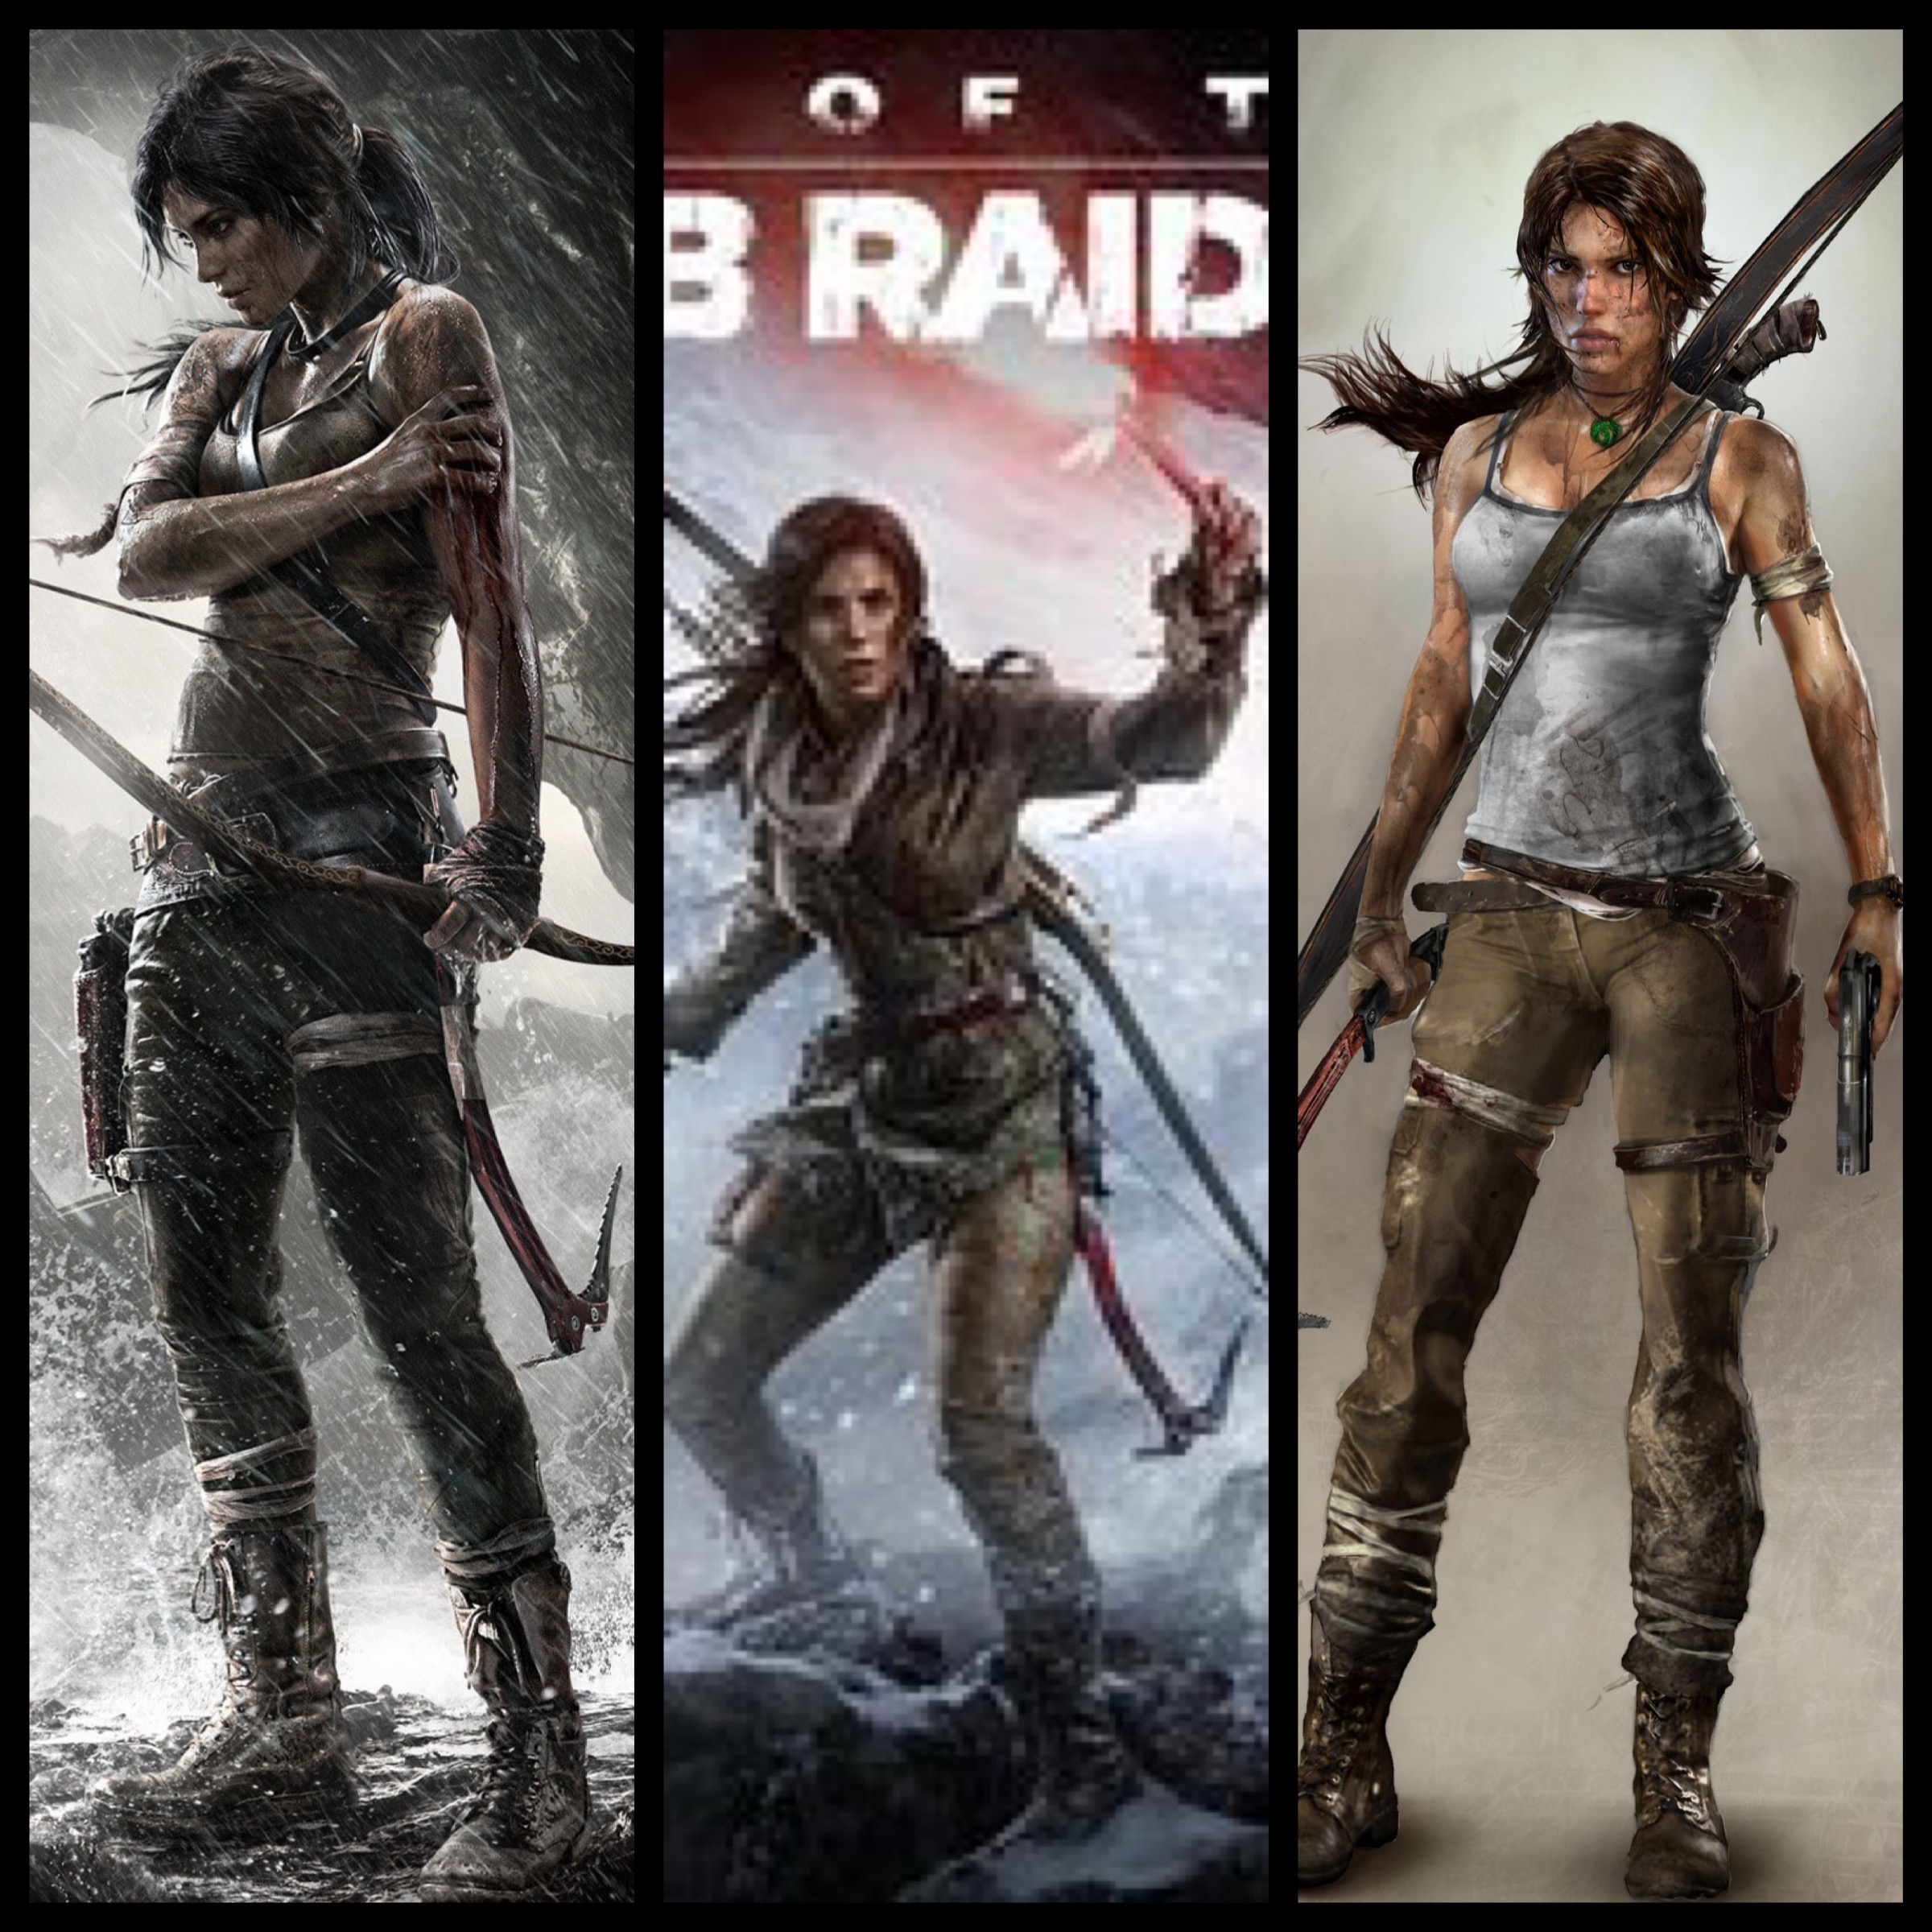 Tomb Raider Poster: Tomb Raider Trailer Reedems After The Fallout From The